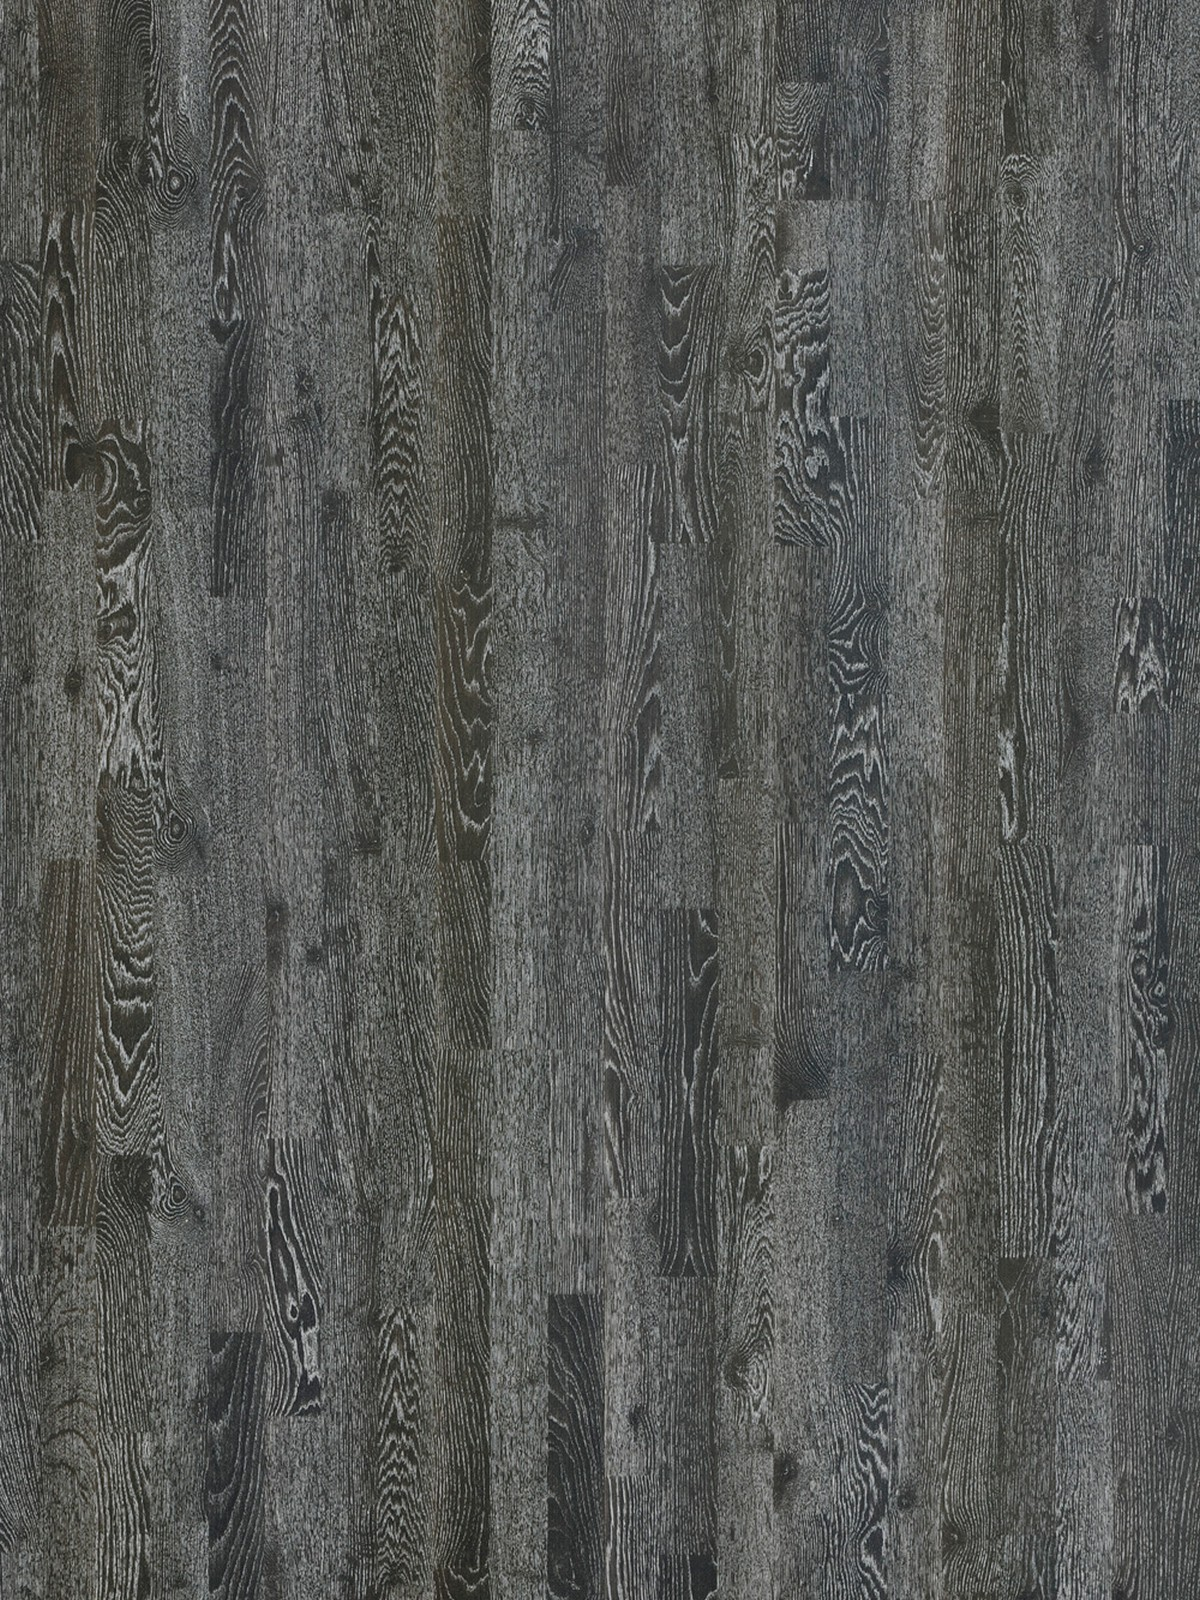 Parchet triplustratificat Stejar Promenade Grey 3strip